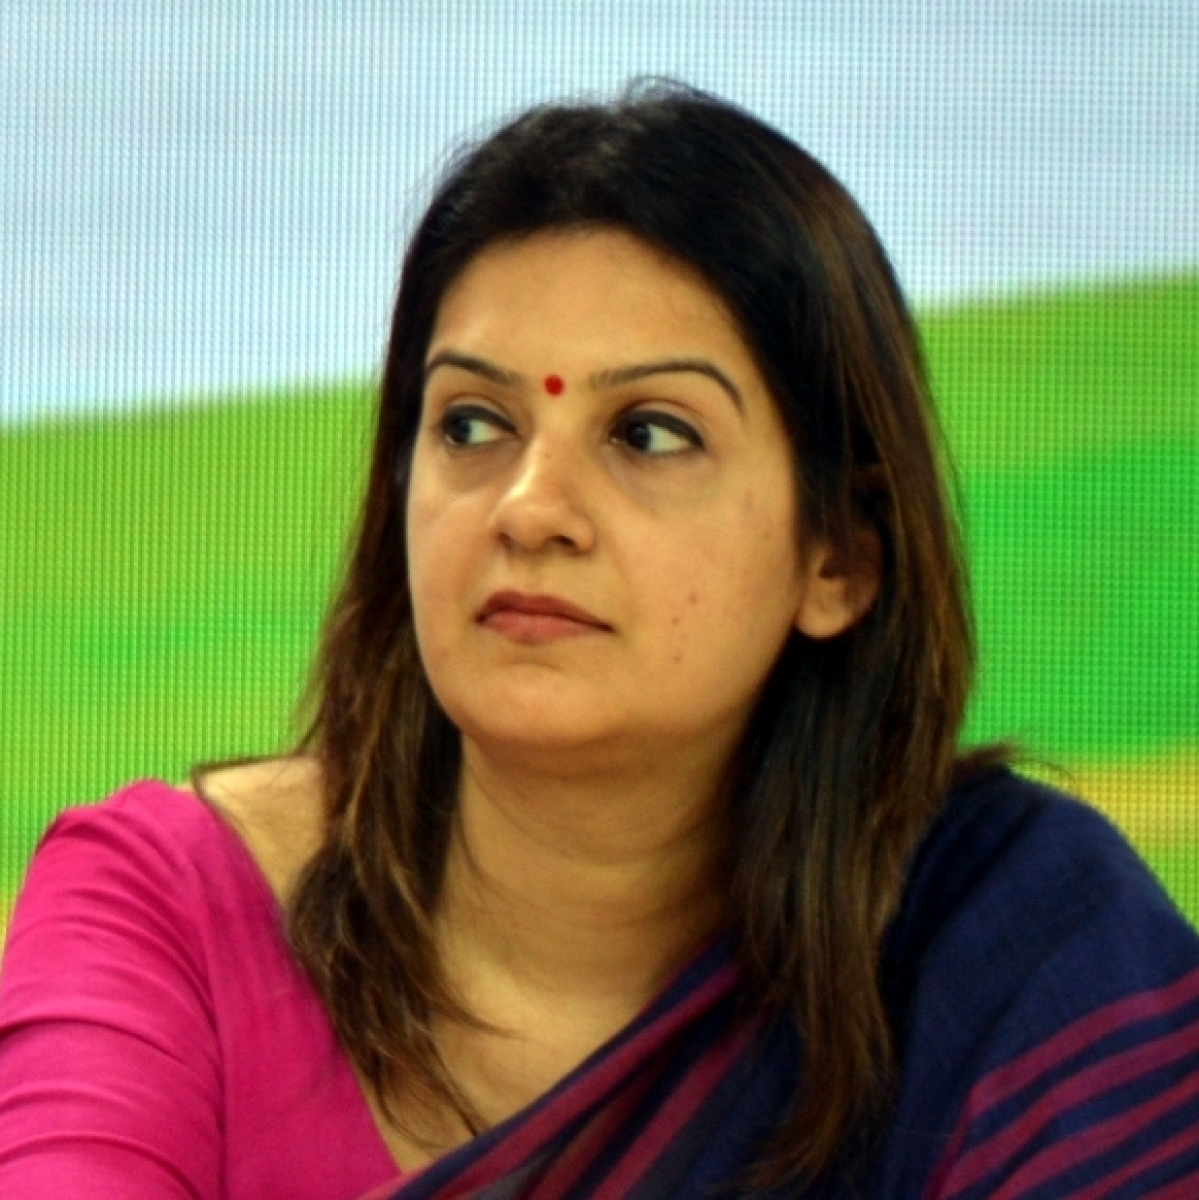 What really is 'out of control' is the Centre's estimate of 1.5 lakh cases in Maharashtra, says Priyanka Chaturvedi